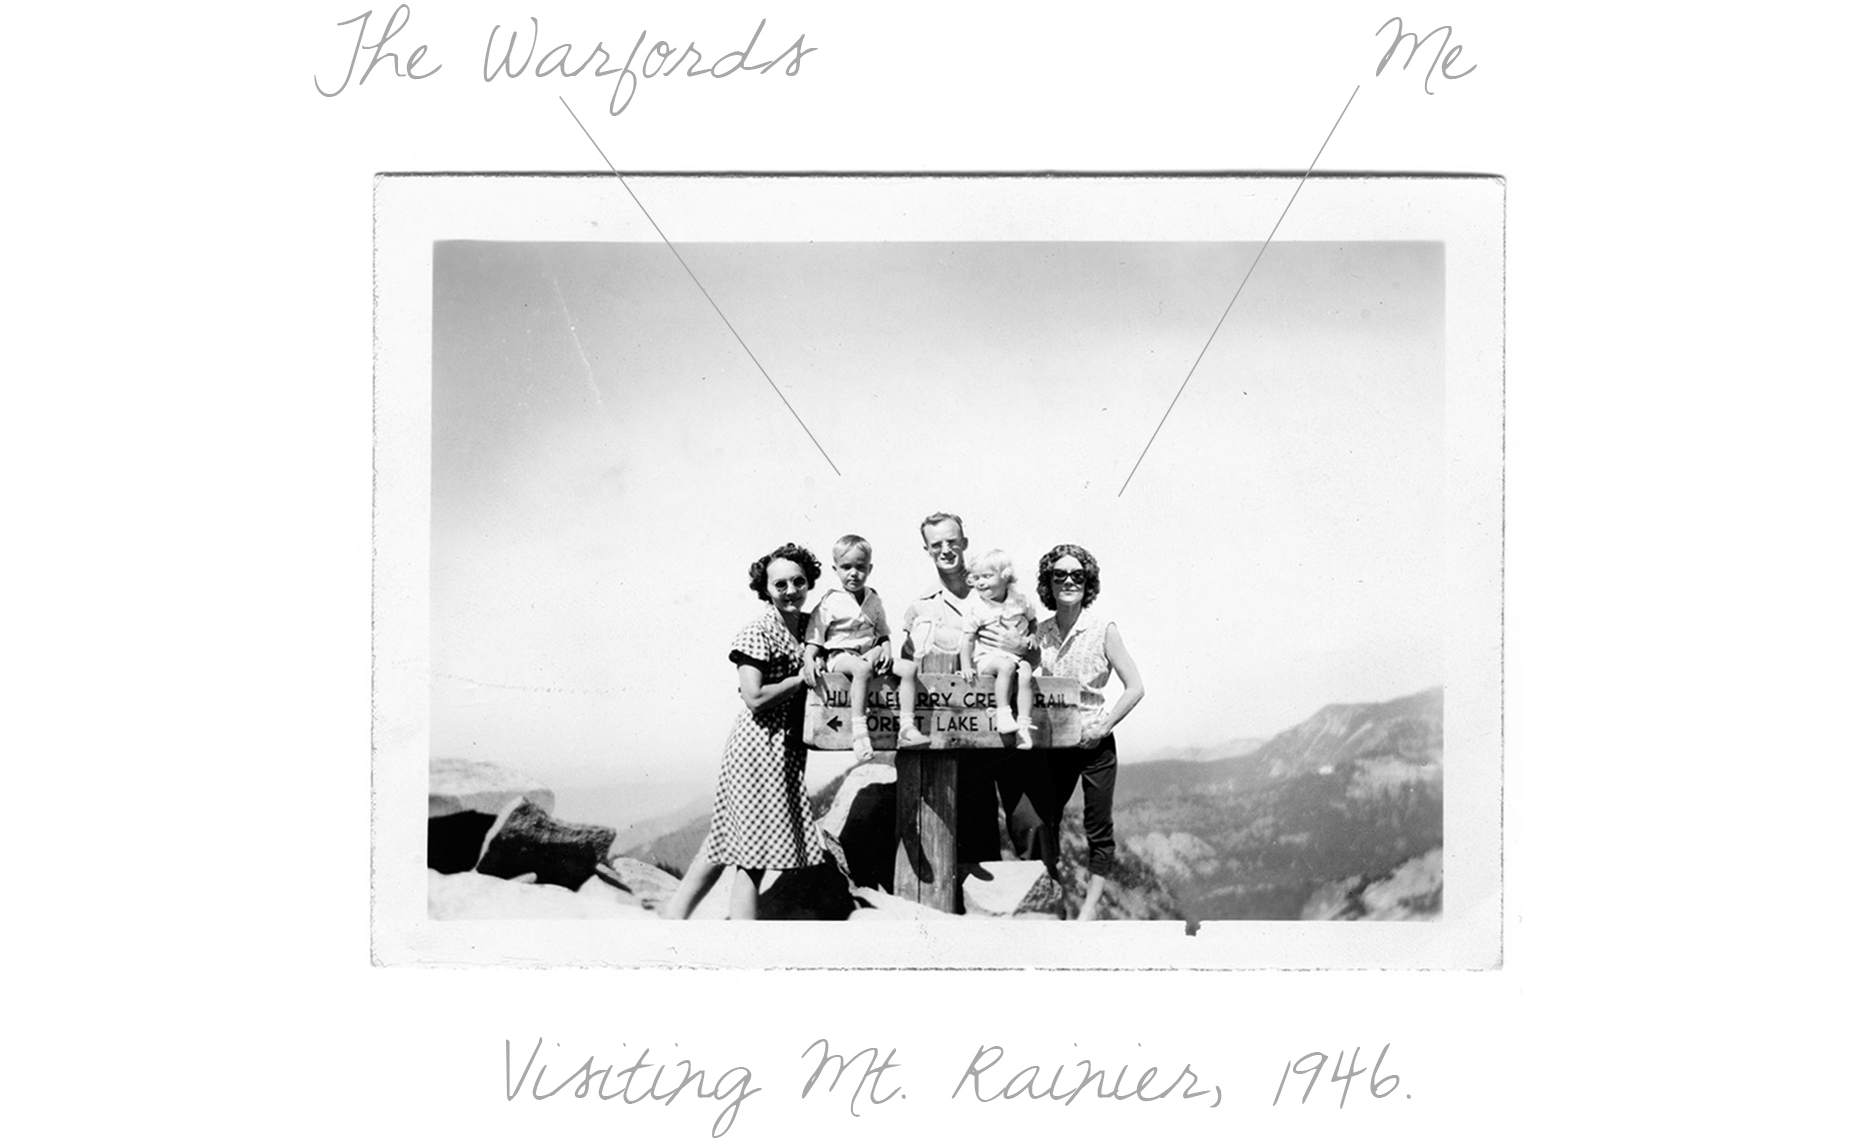 Visiting Mt. Rainier 1946 TXT